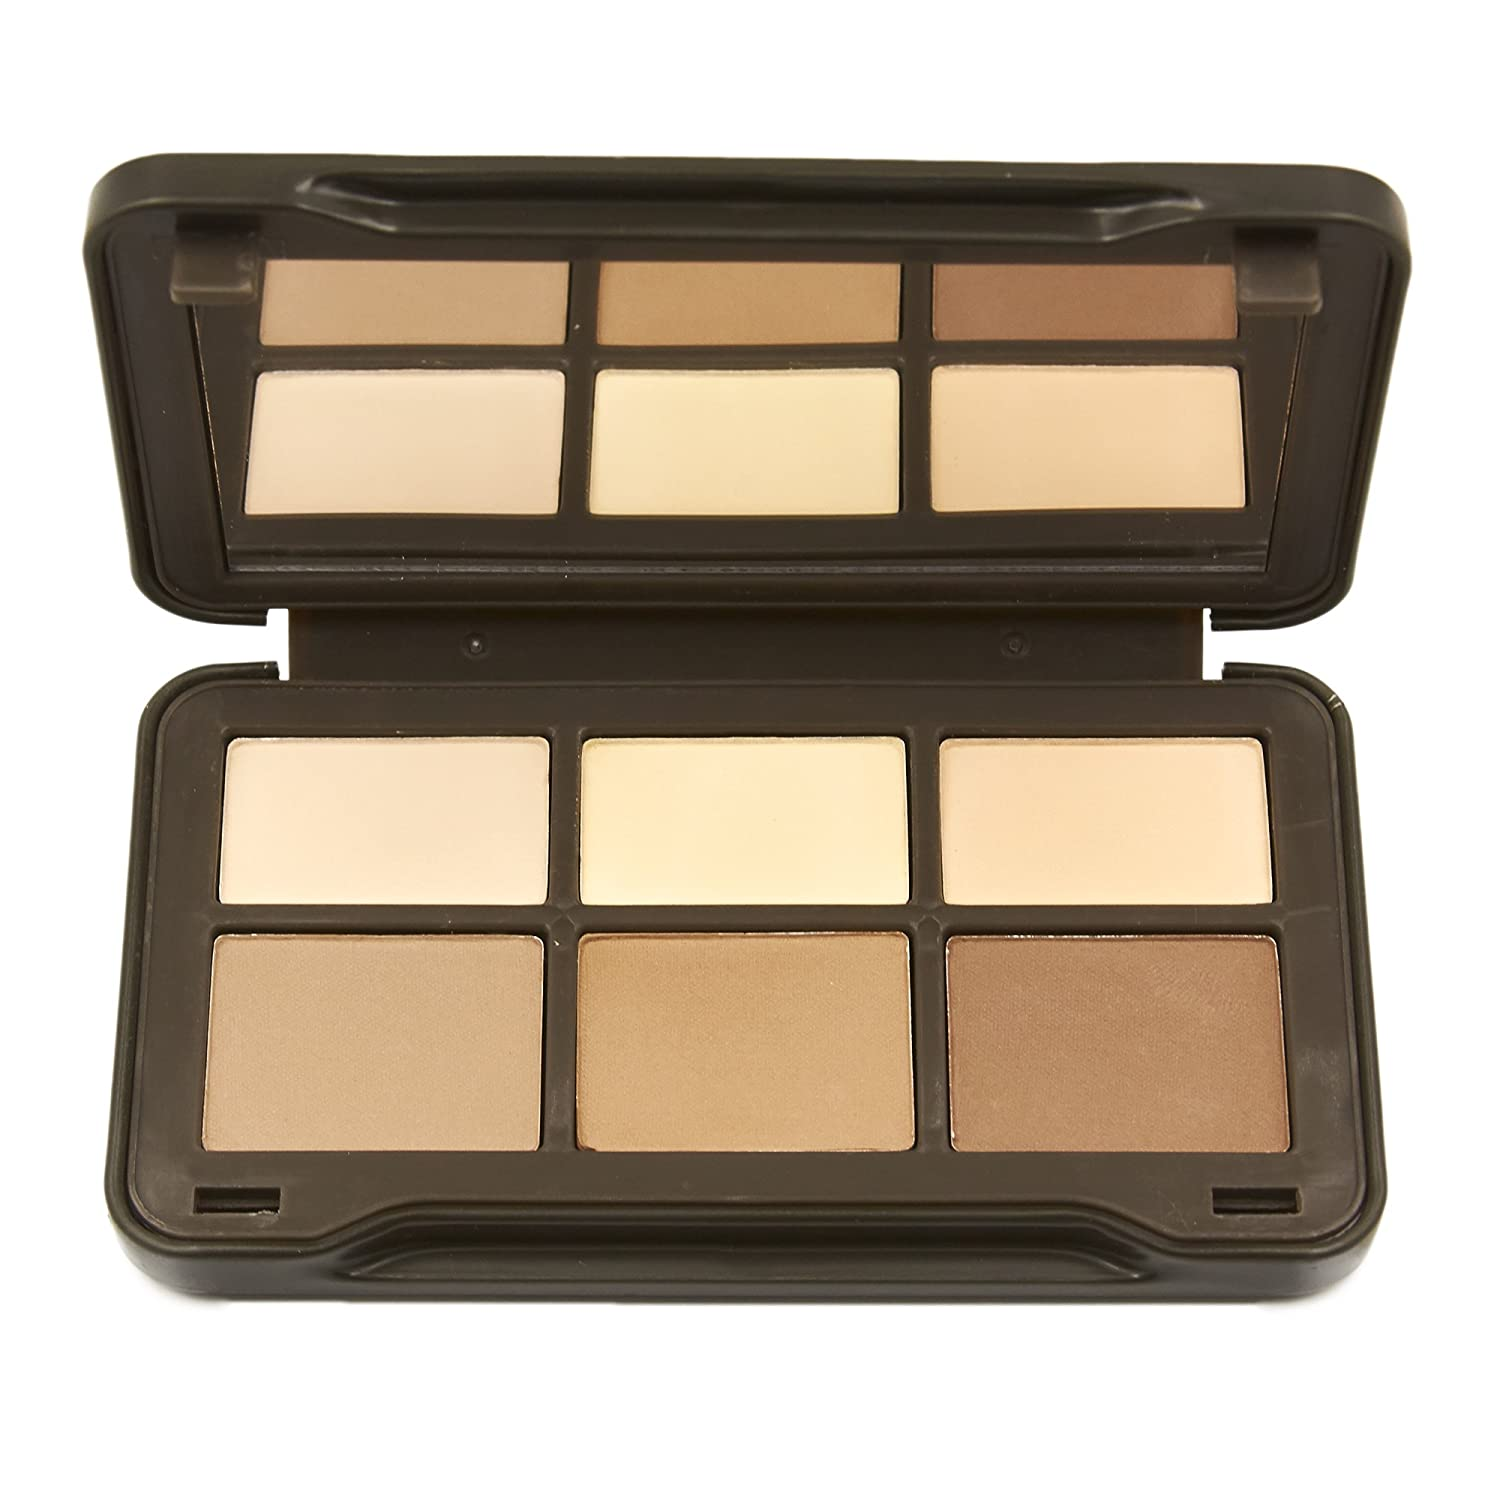 BYS On-The-Go Contour Powder Palette, Six Shades with Mirror